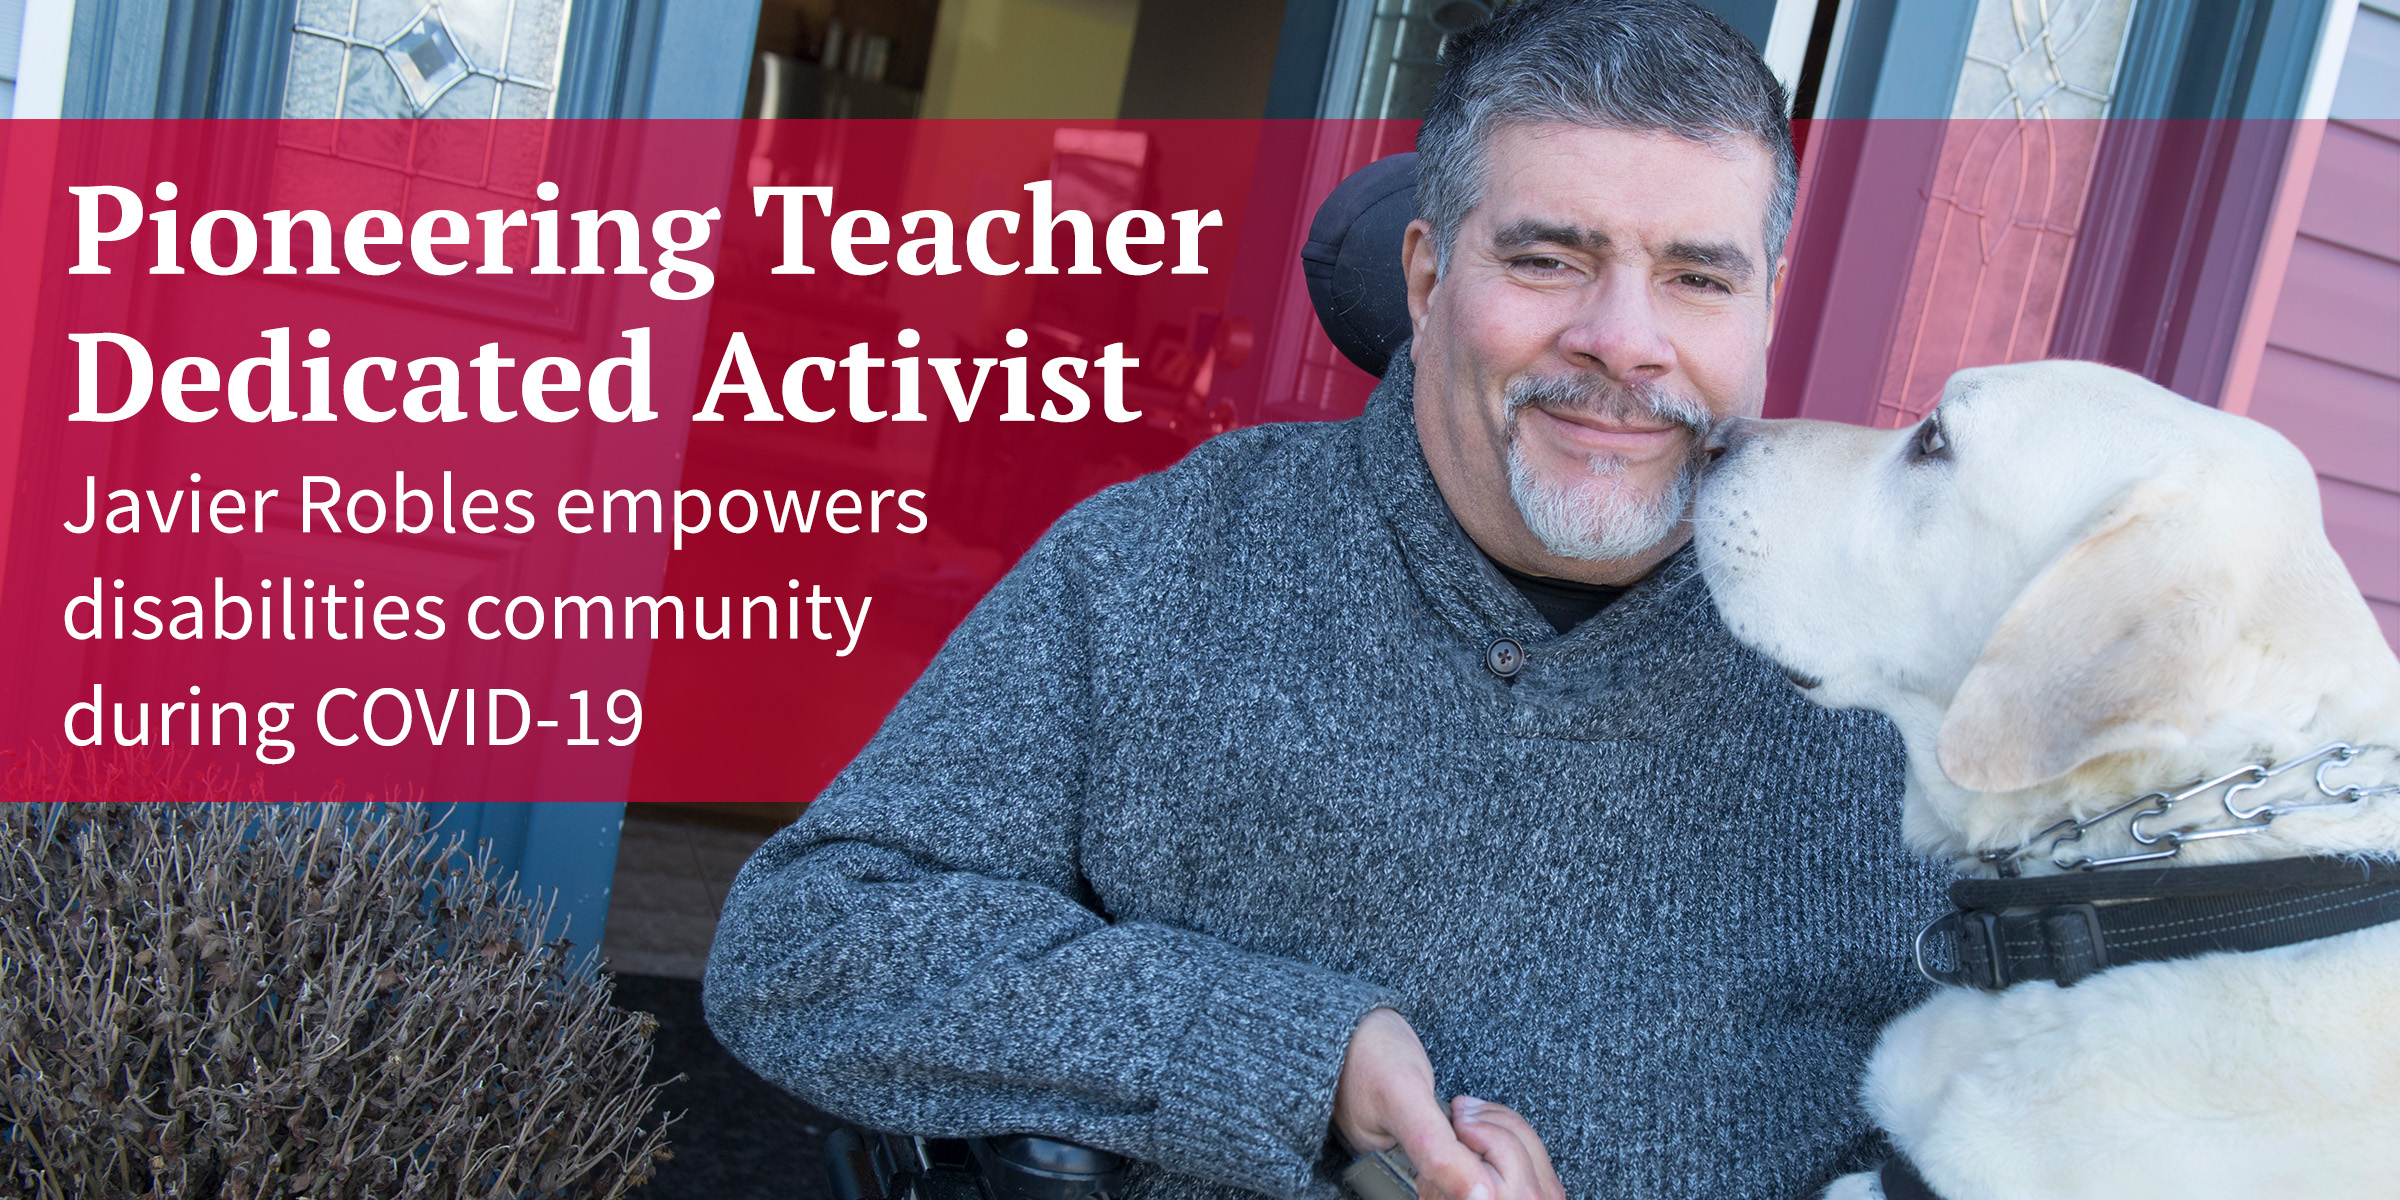 Pioneering Teacher, Dedicated Activist: Javier Robles empowers disabilities community during COVID-19